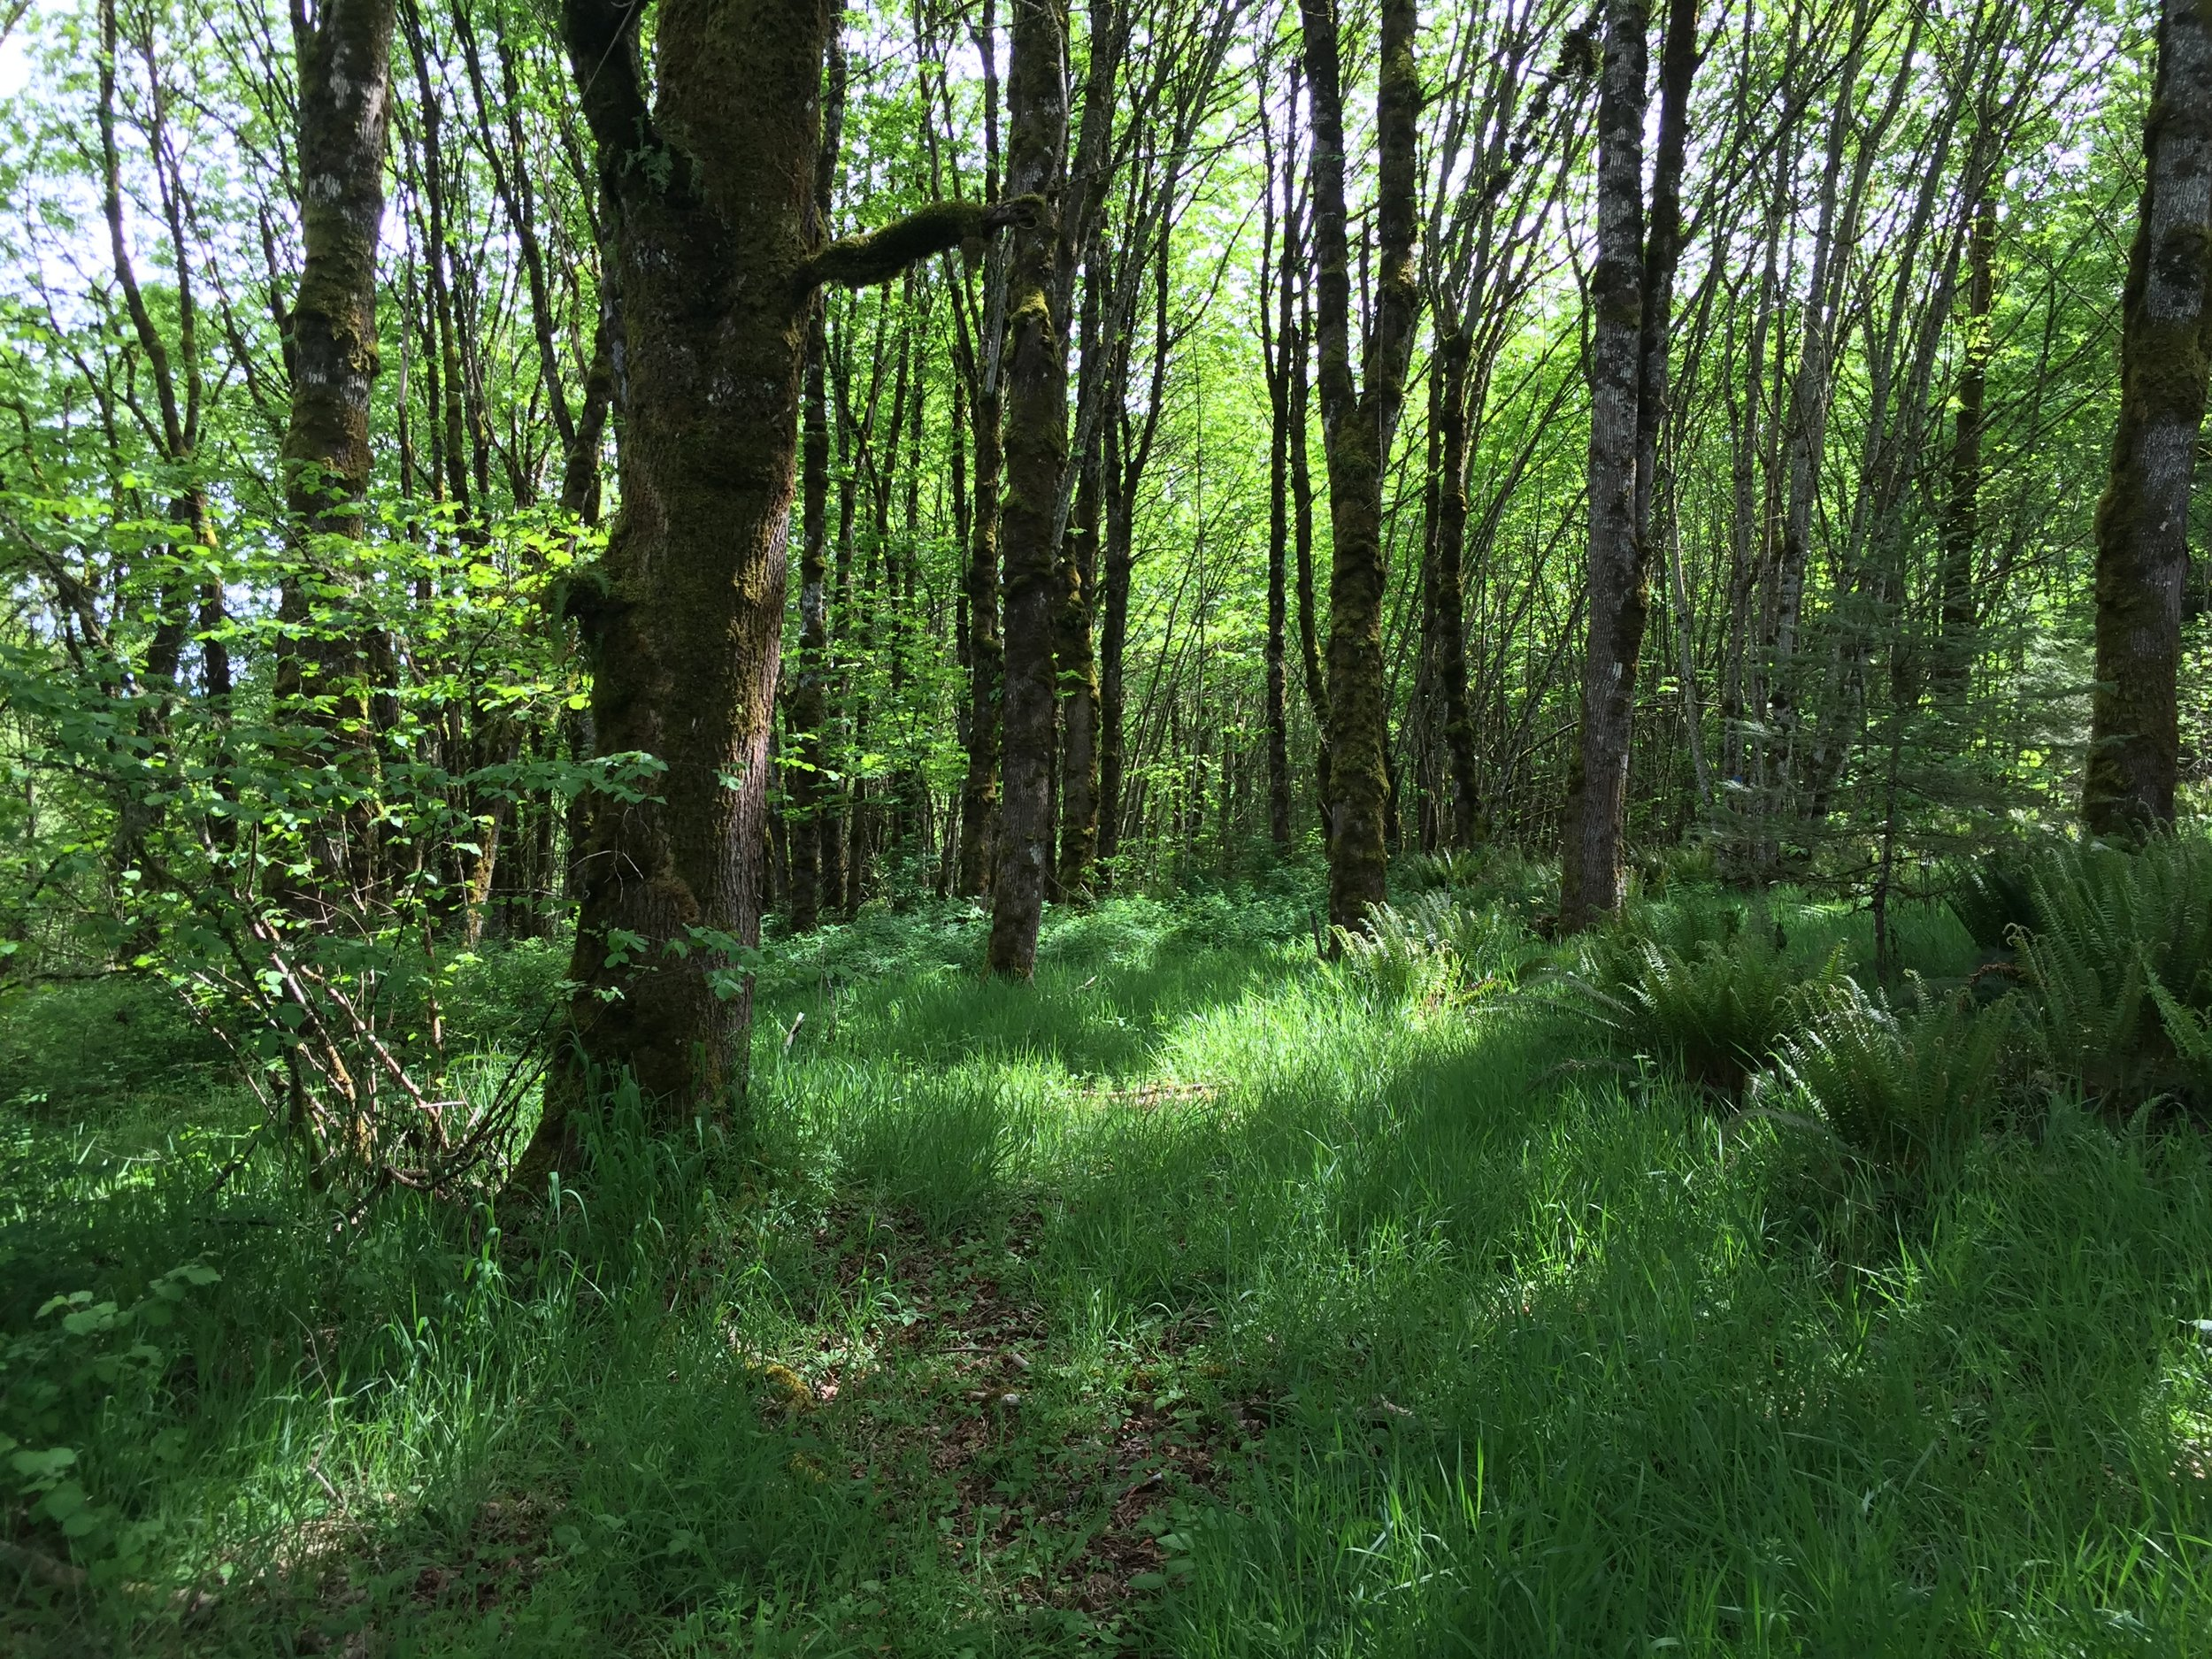 forest in summer, limited light filtering through into the short grass below